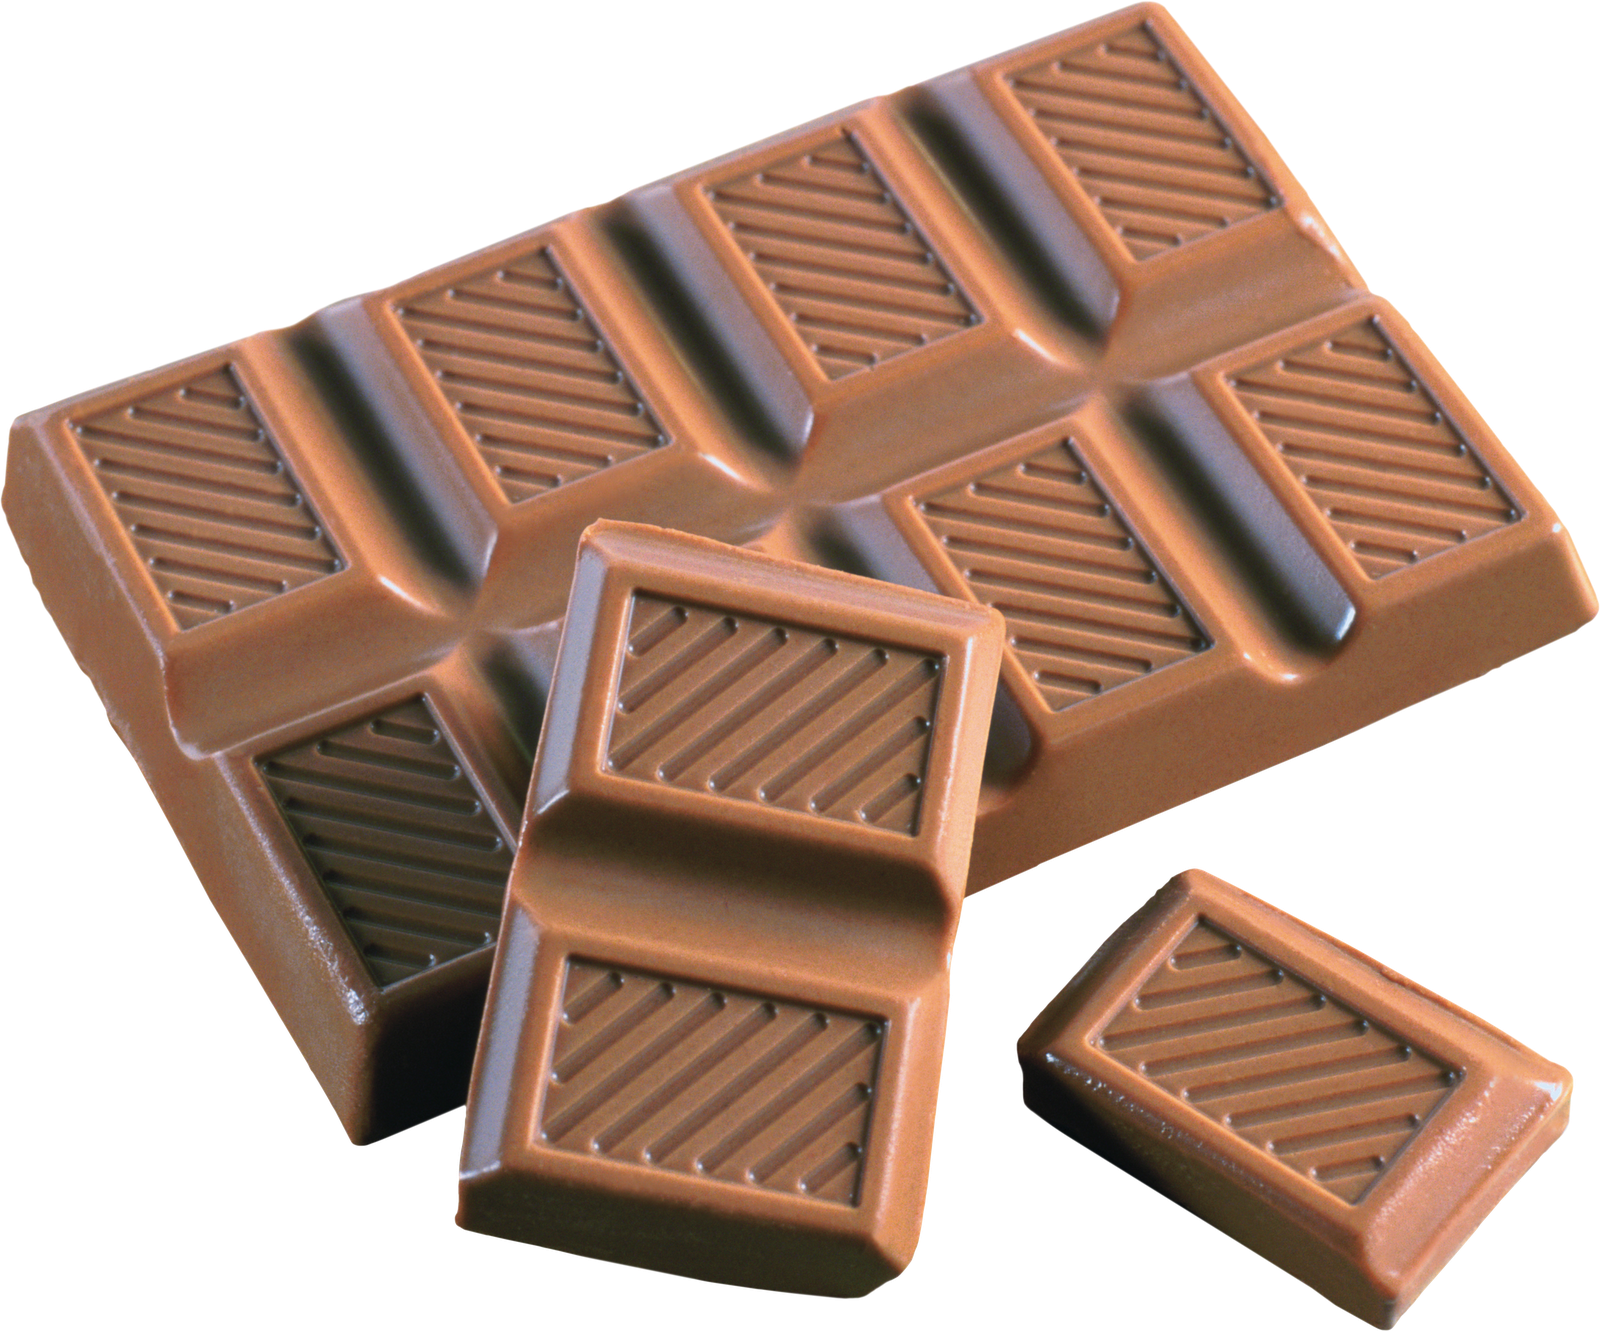 Best Chocolate Clipart Clip art of Chocolate Clipart #6212.